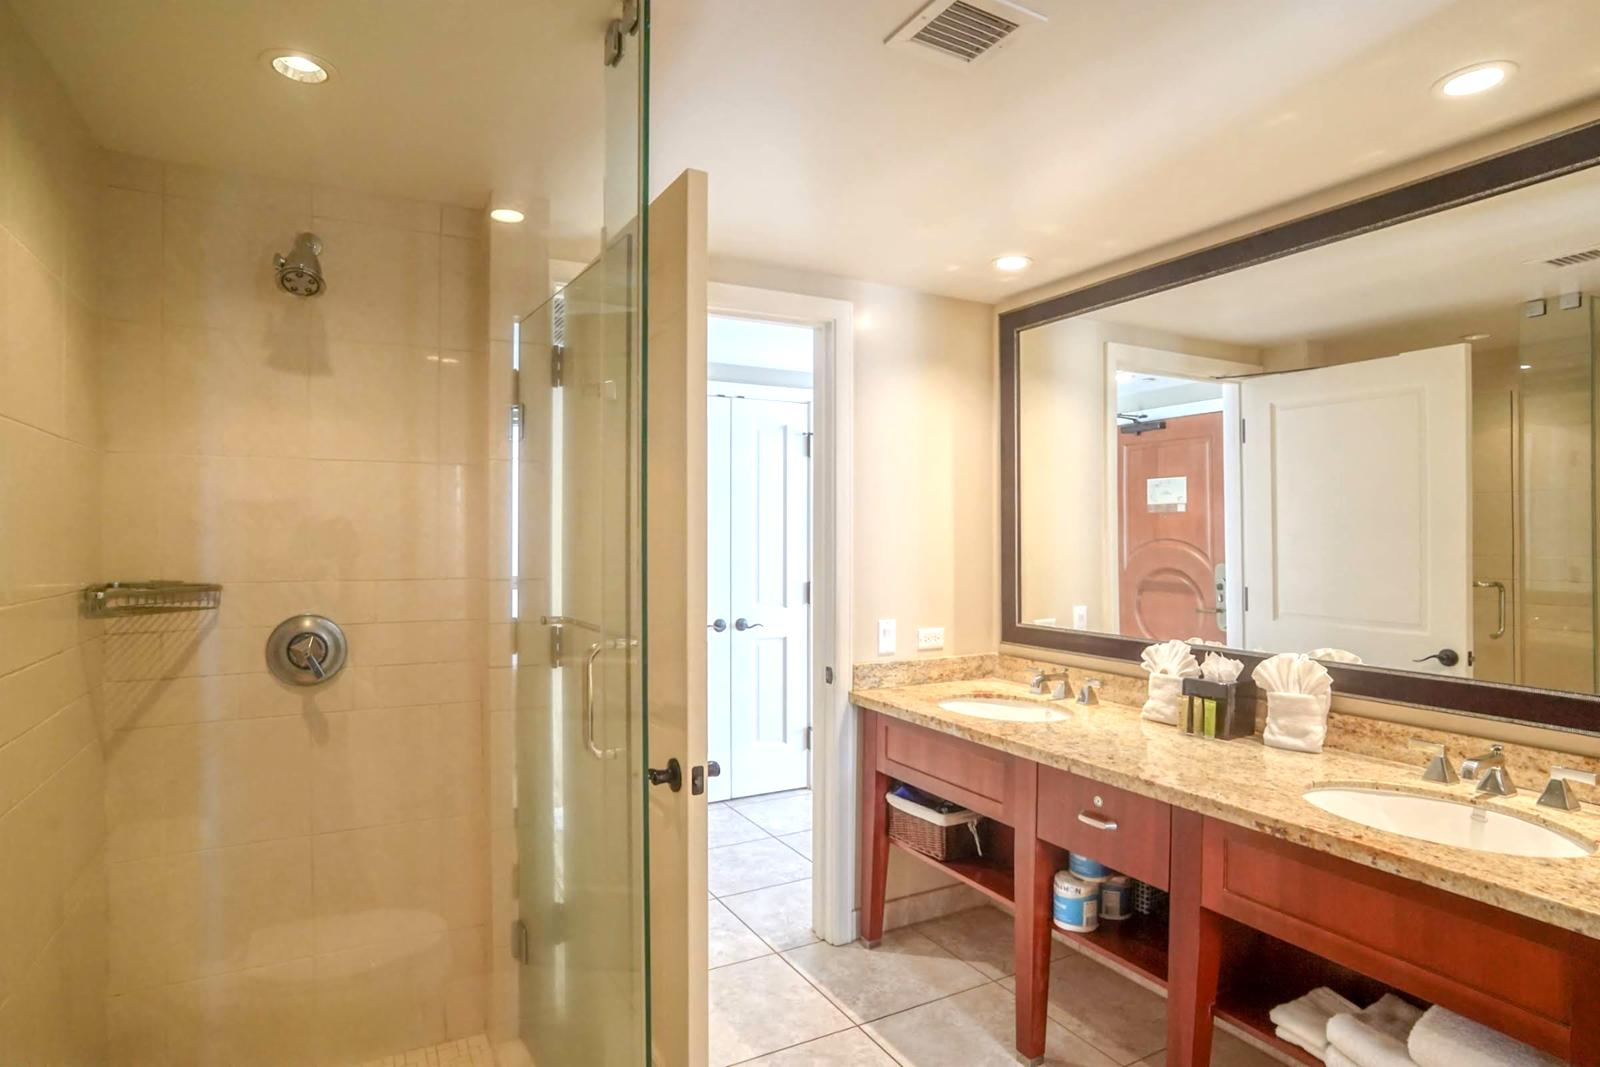 Floor to ceiling, glass enclosed shower